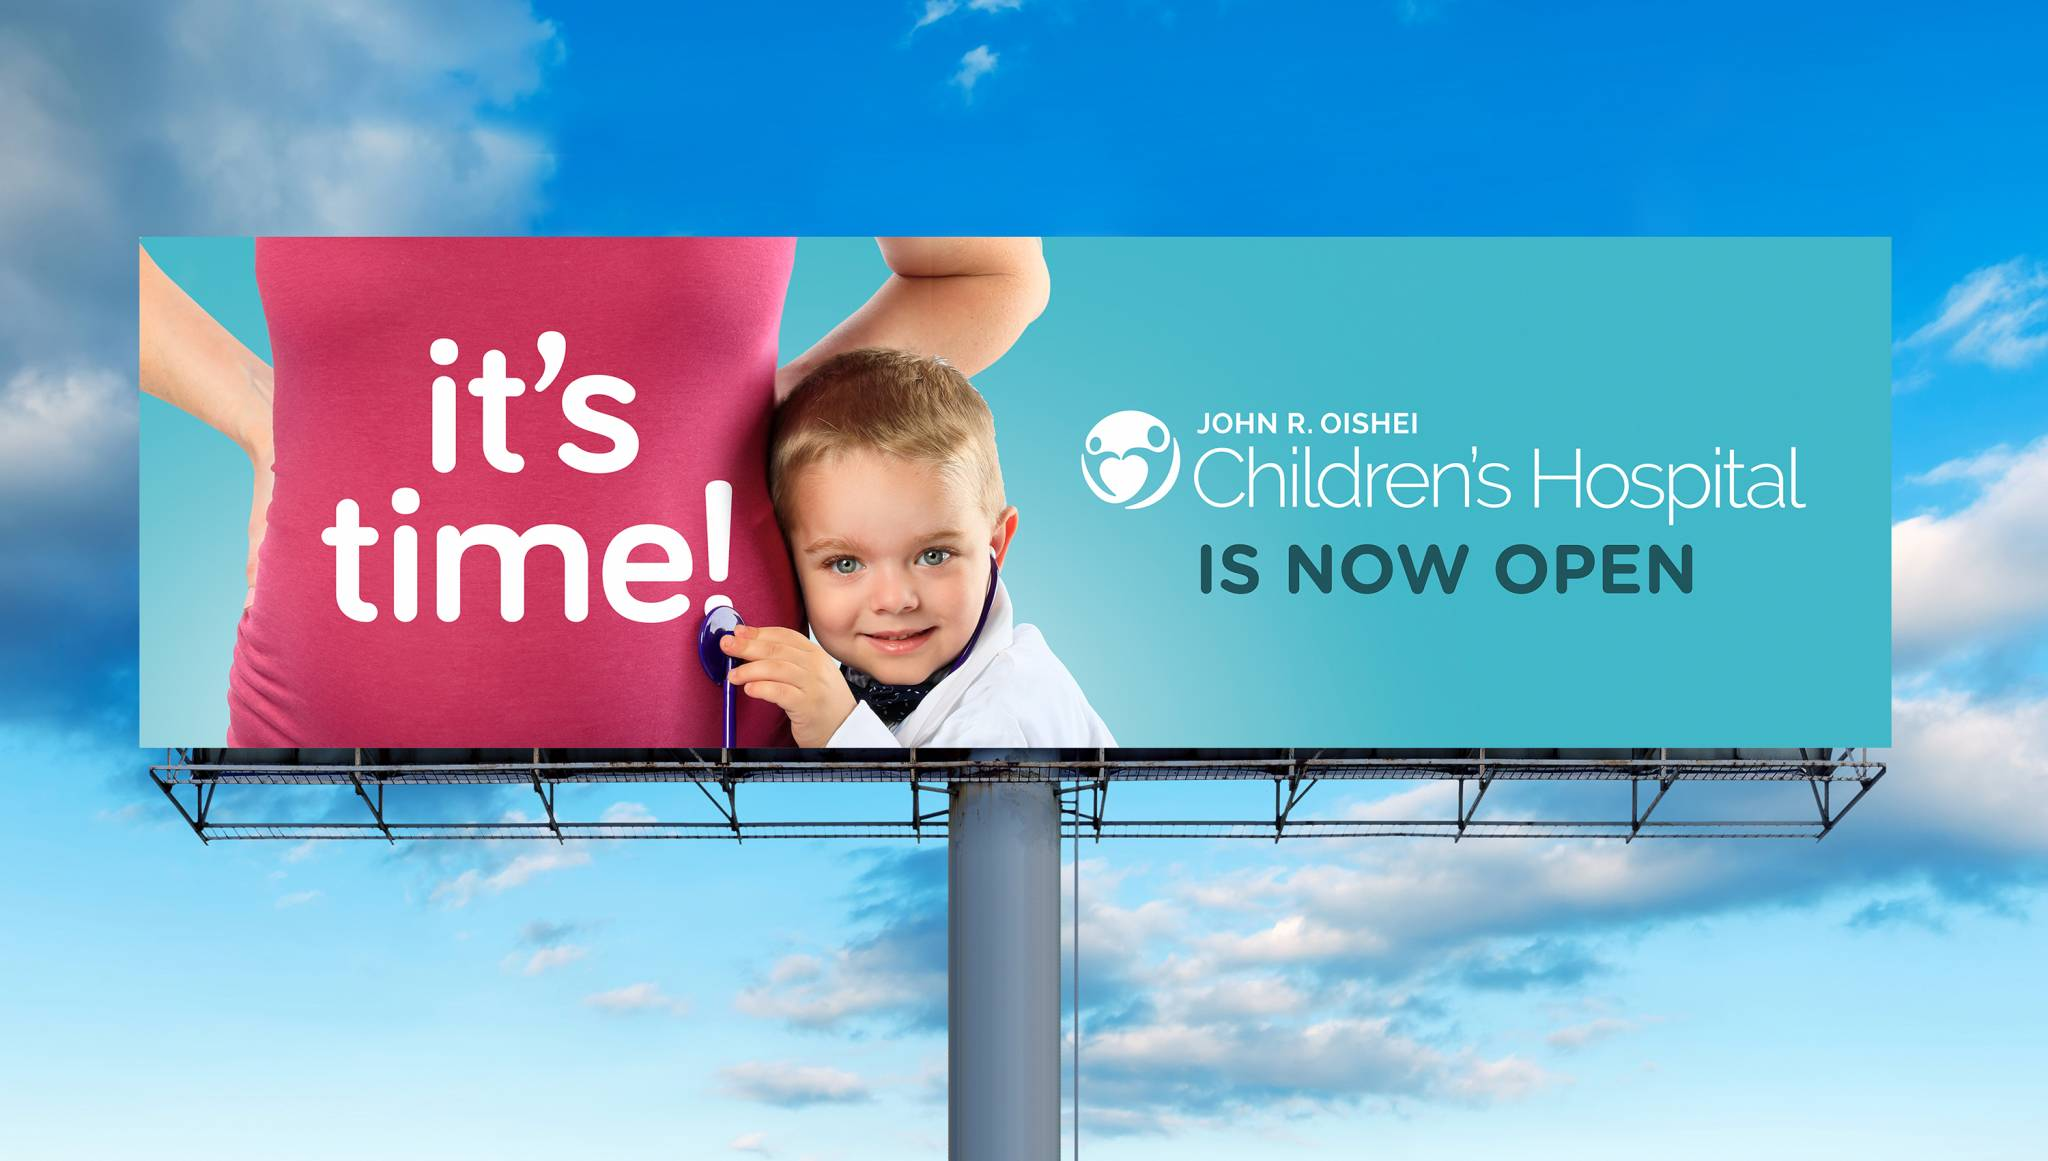 brand Identity photography outdoor advertising campaign Oishei Children's  Hospital